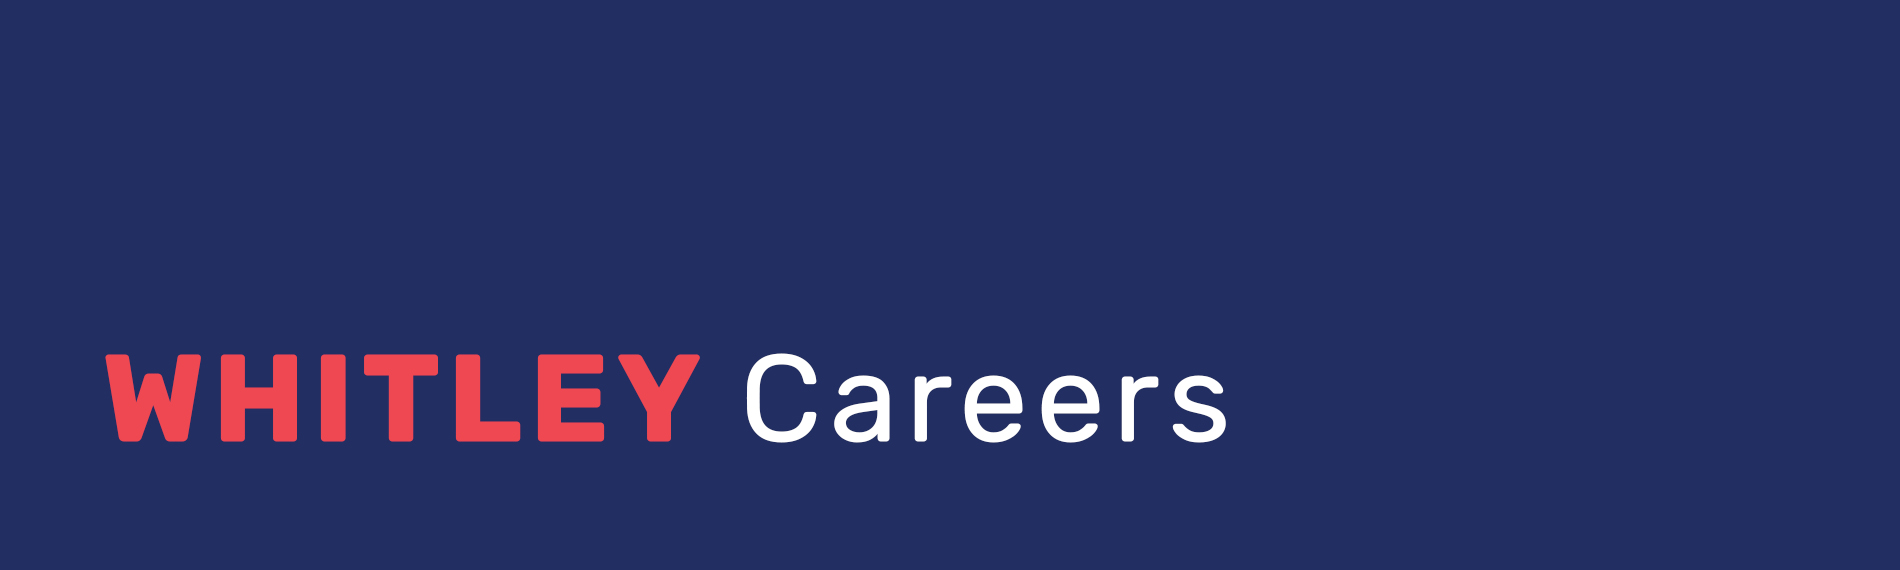 Careers Header